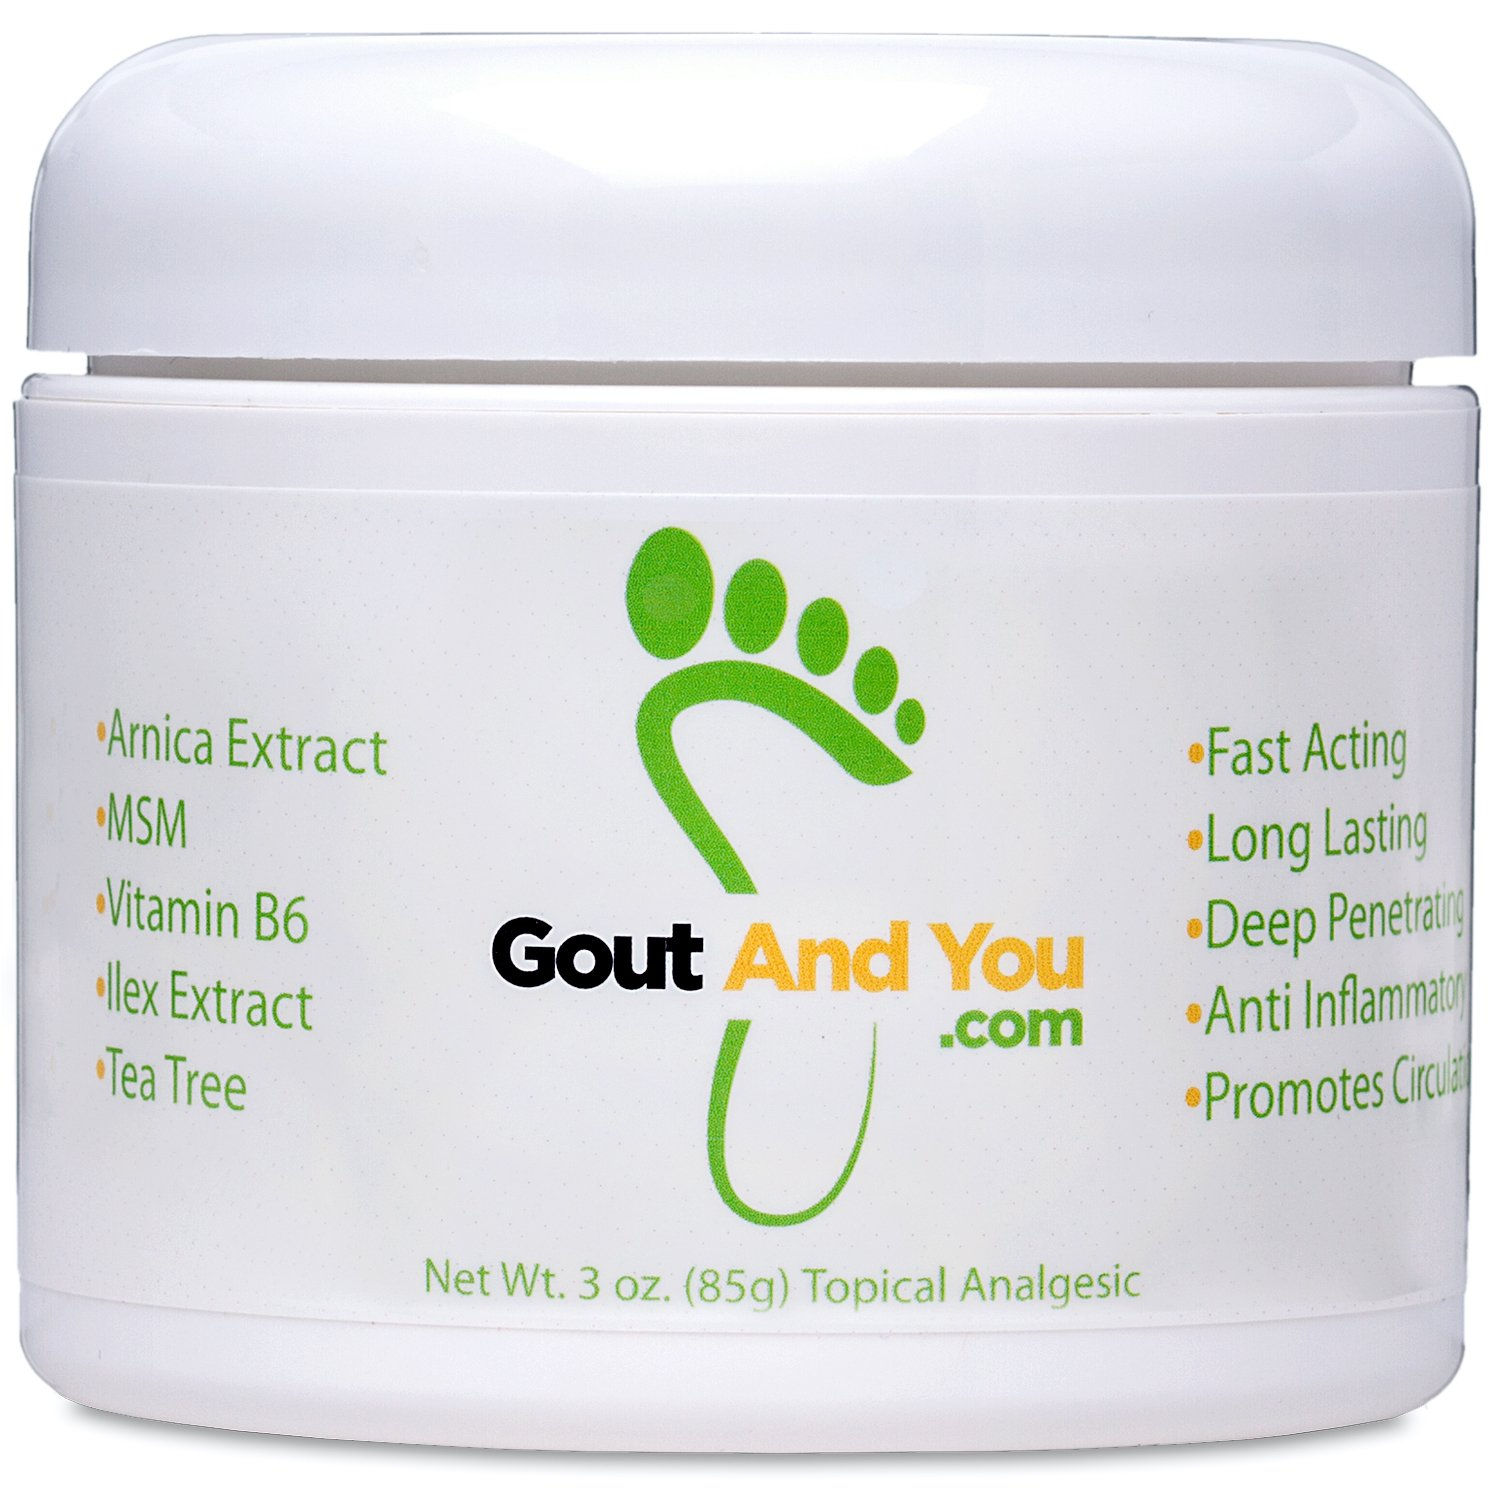 GoutandYou Therapeutic Gout Relief Cream with Arnica Extract, Ilex Leaf Extract, Aloe Vera and Tea Tree Oil.